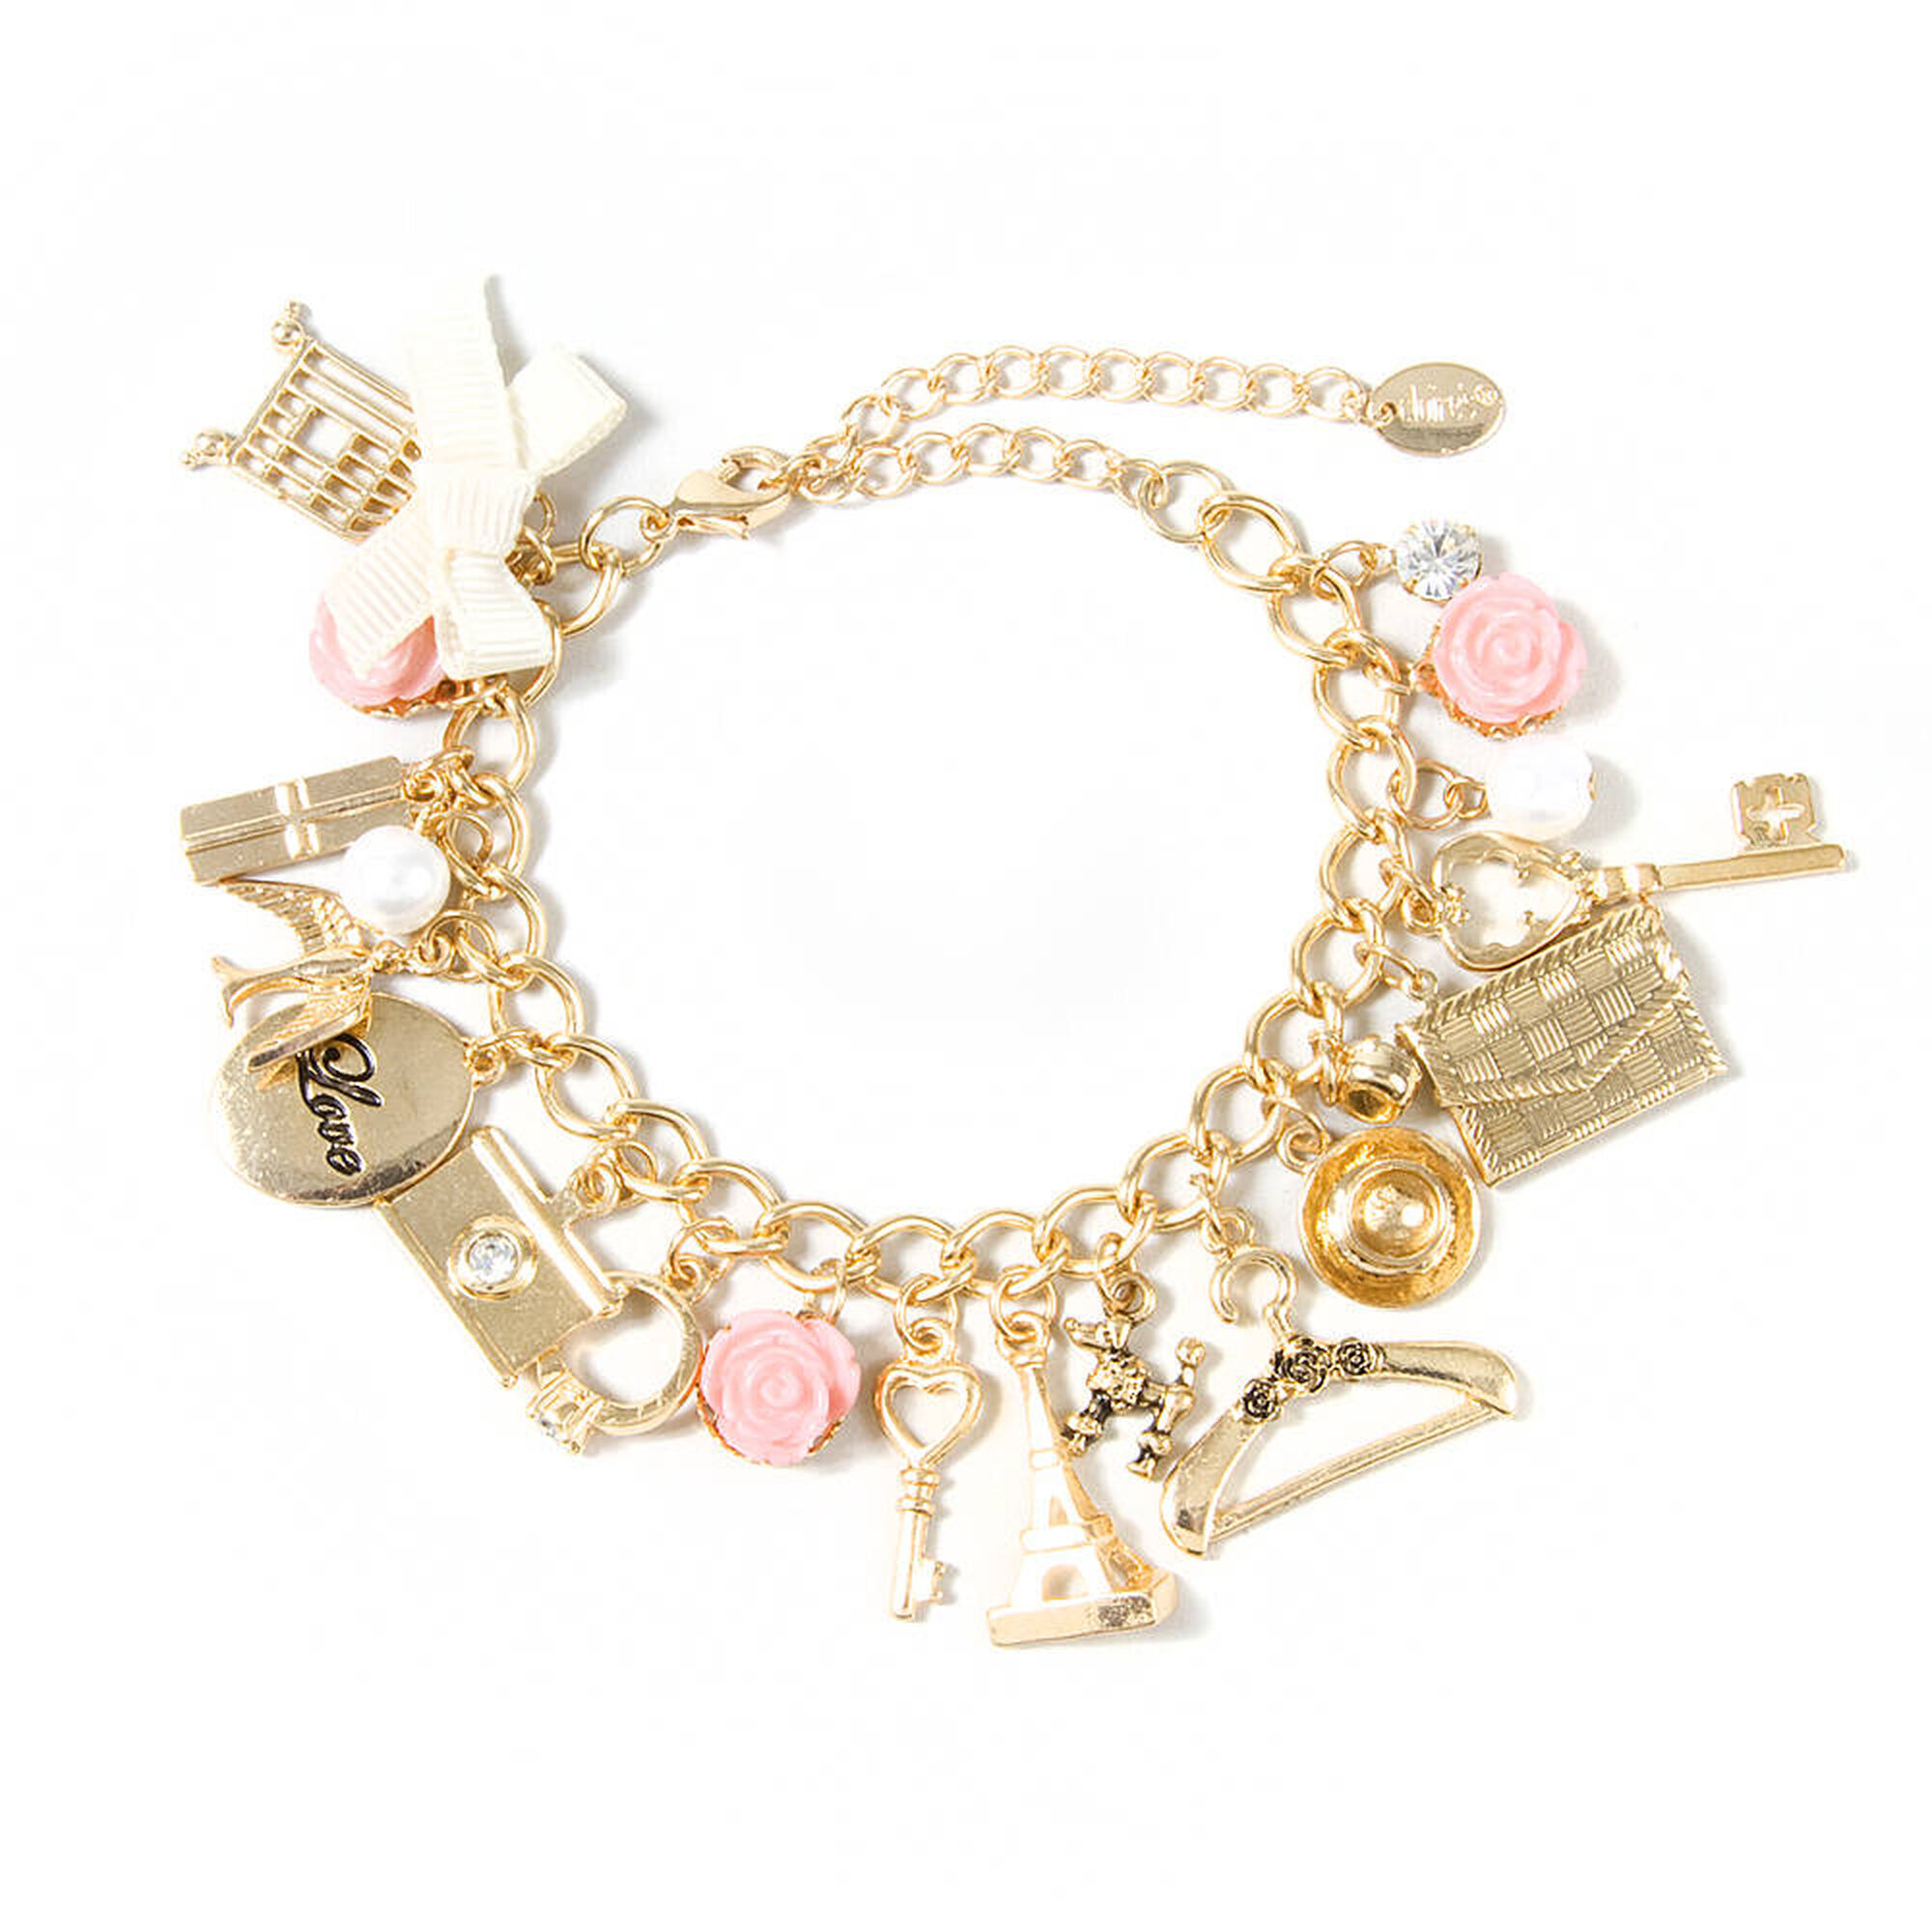 Paris Inspired Gold Charm Bracelet